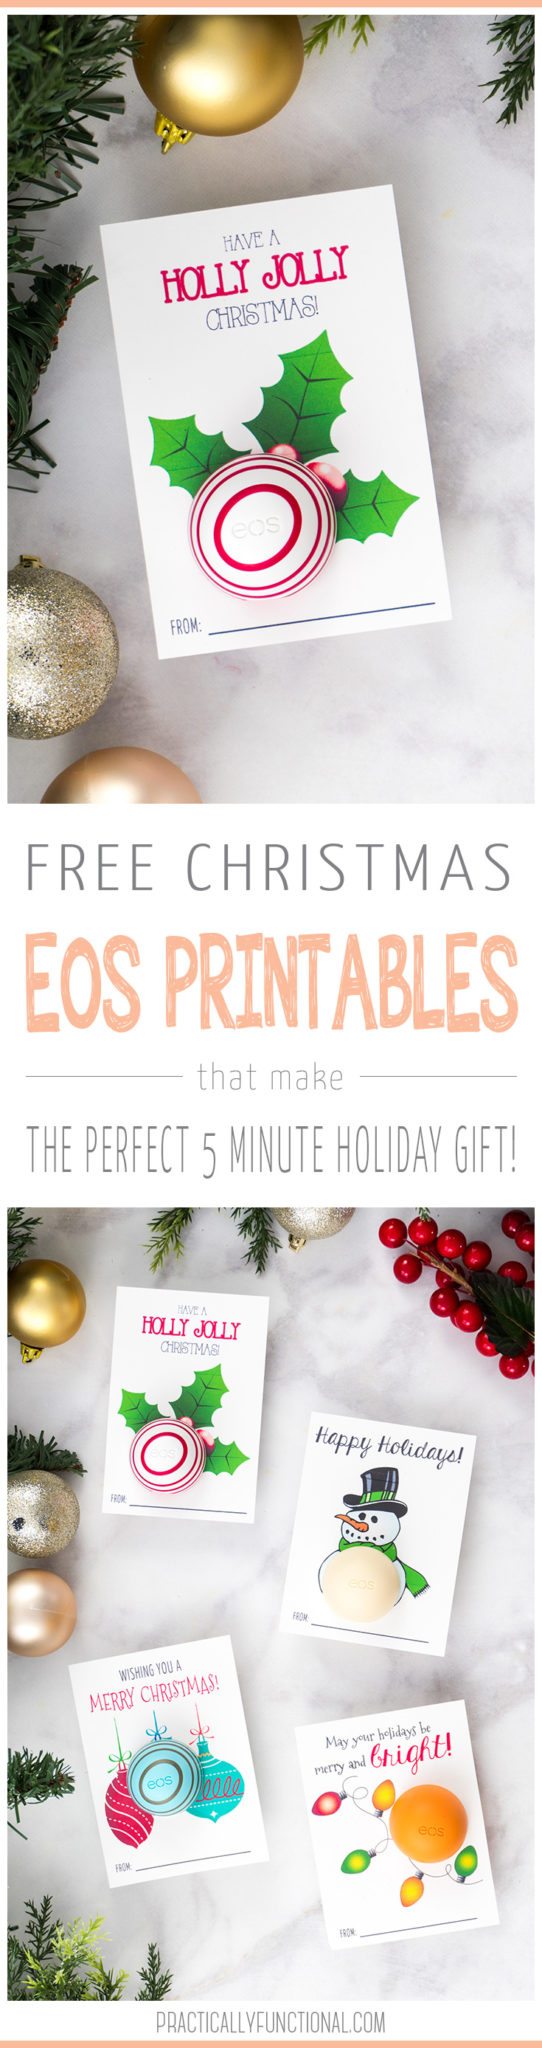 These free printable eos lip balm Christmas gifts are such a cute and easy gift idea! Whip up this simple five-minute Christmas gift for the perfect neighbor gift or easy gift for your kid's teachers.